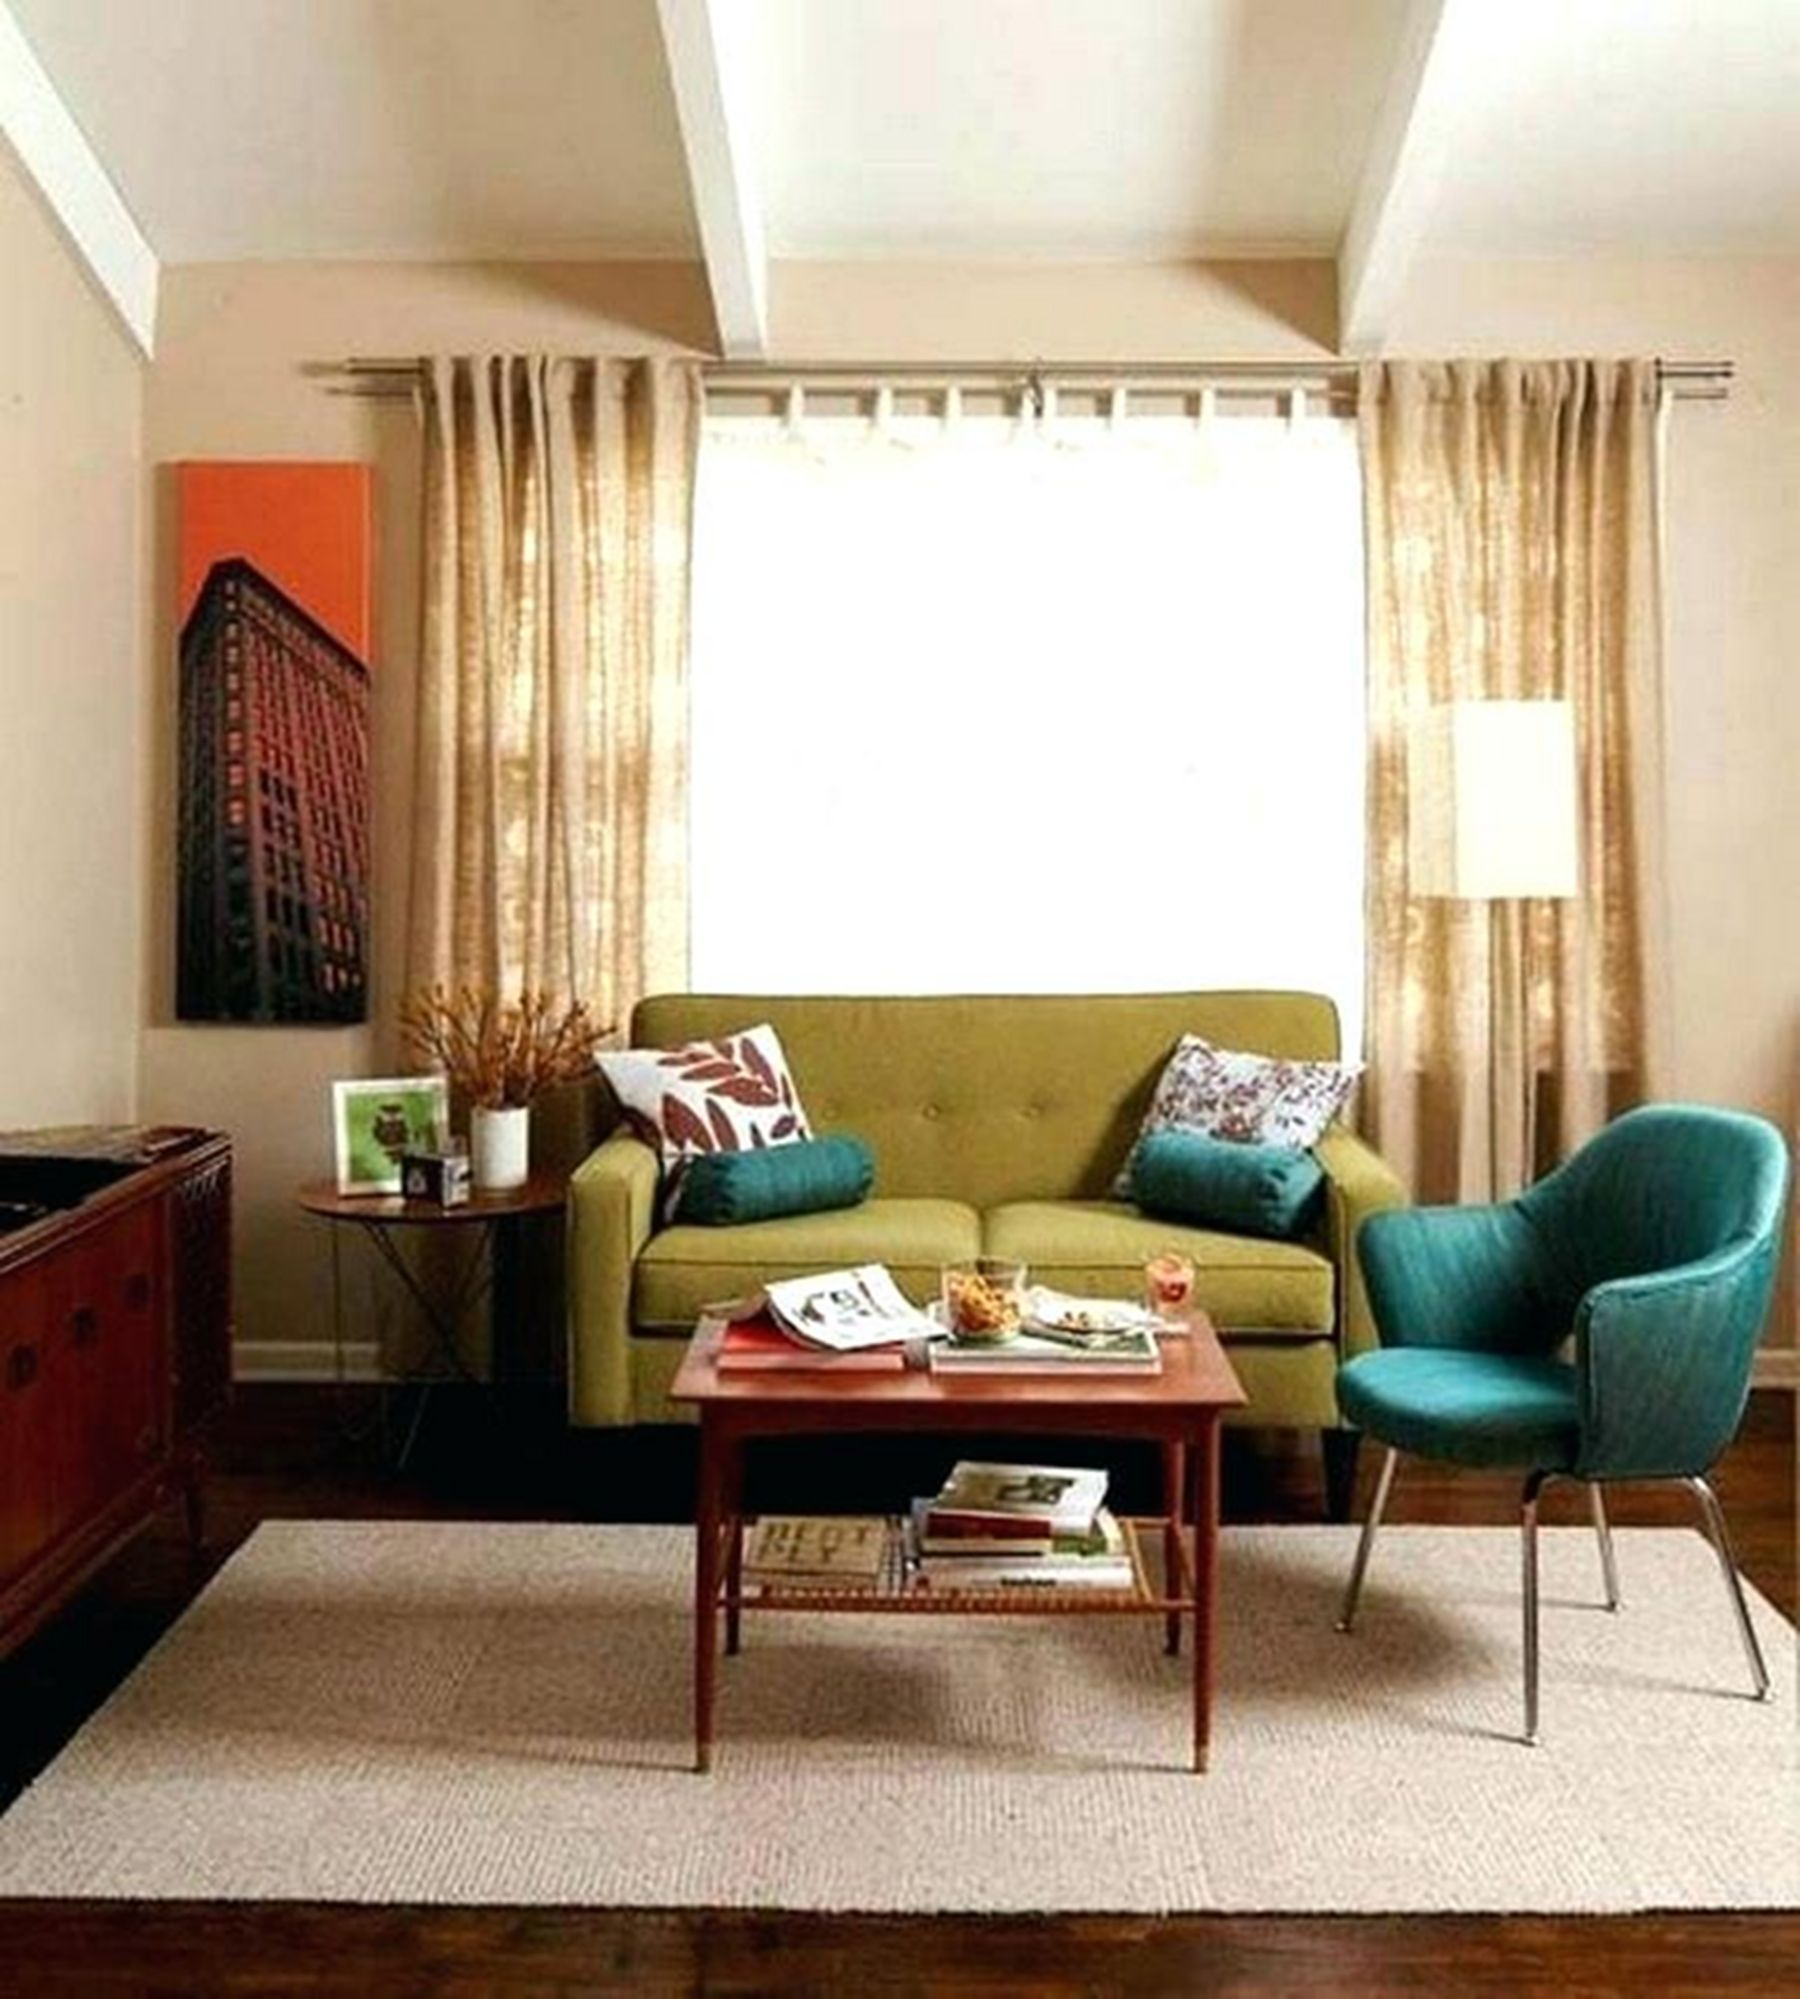 15 Awesome Living Room Decoration Ideas With Attractive Retro Style For Your Inspiration Retro Living Rooms Living Room Color Schemes Retro Modern Living Room #retro #modern #living #room